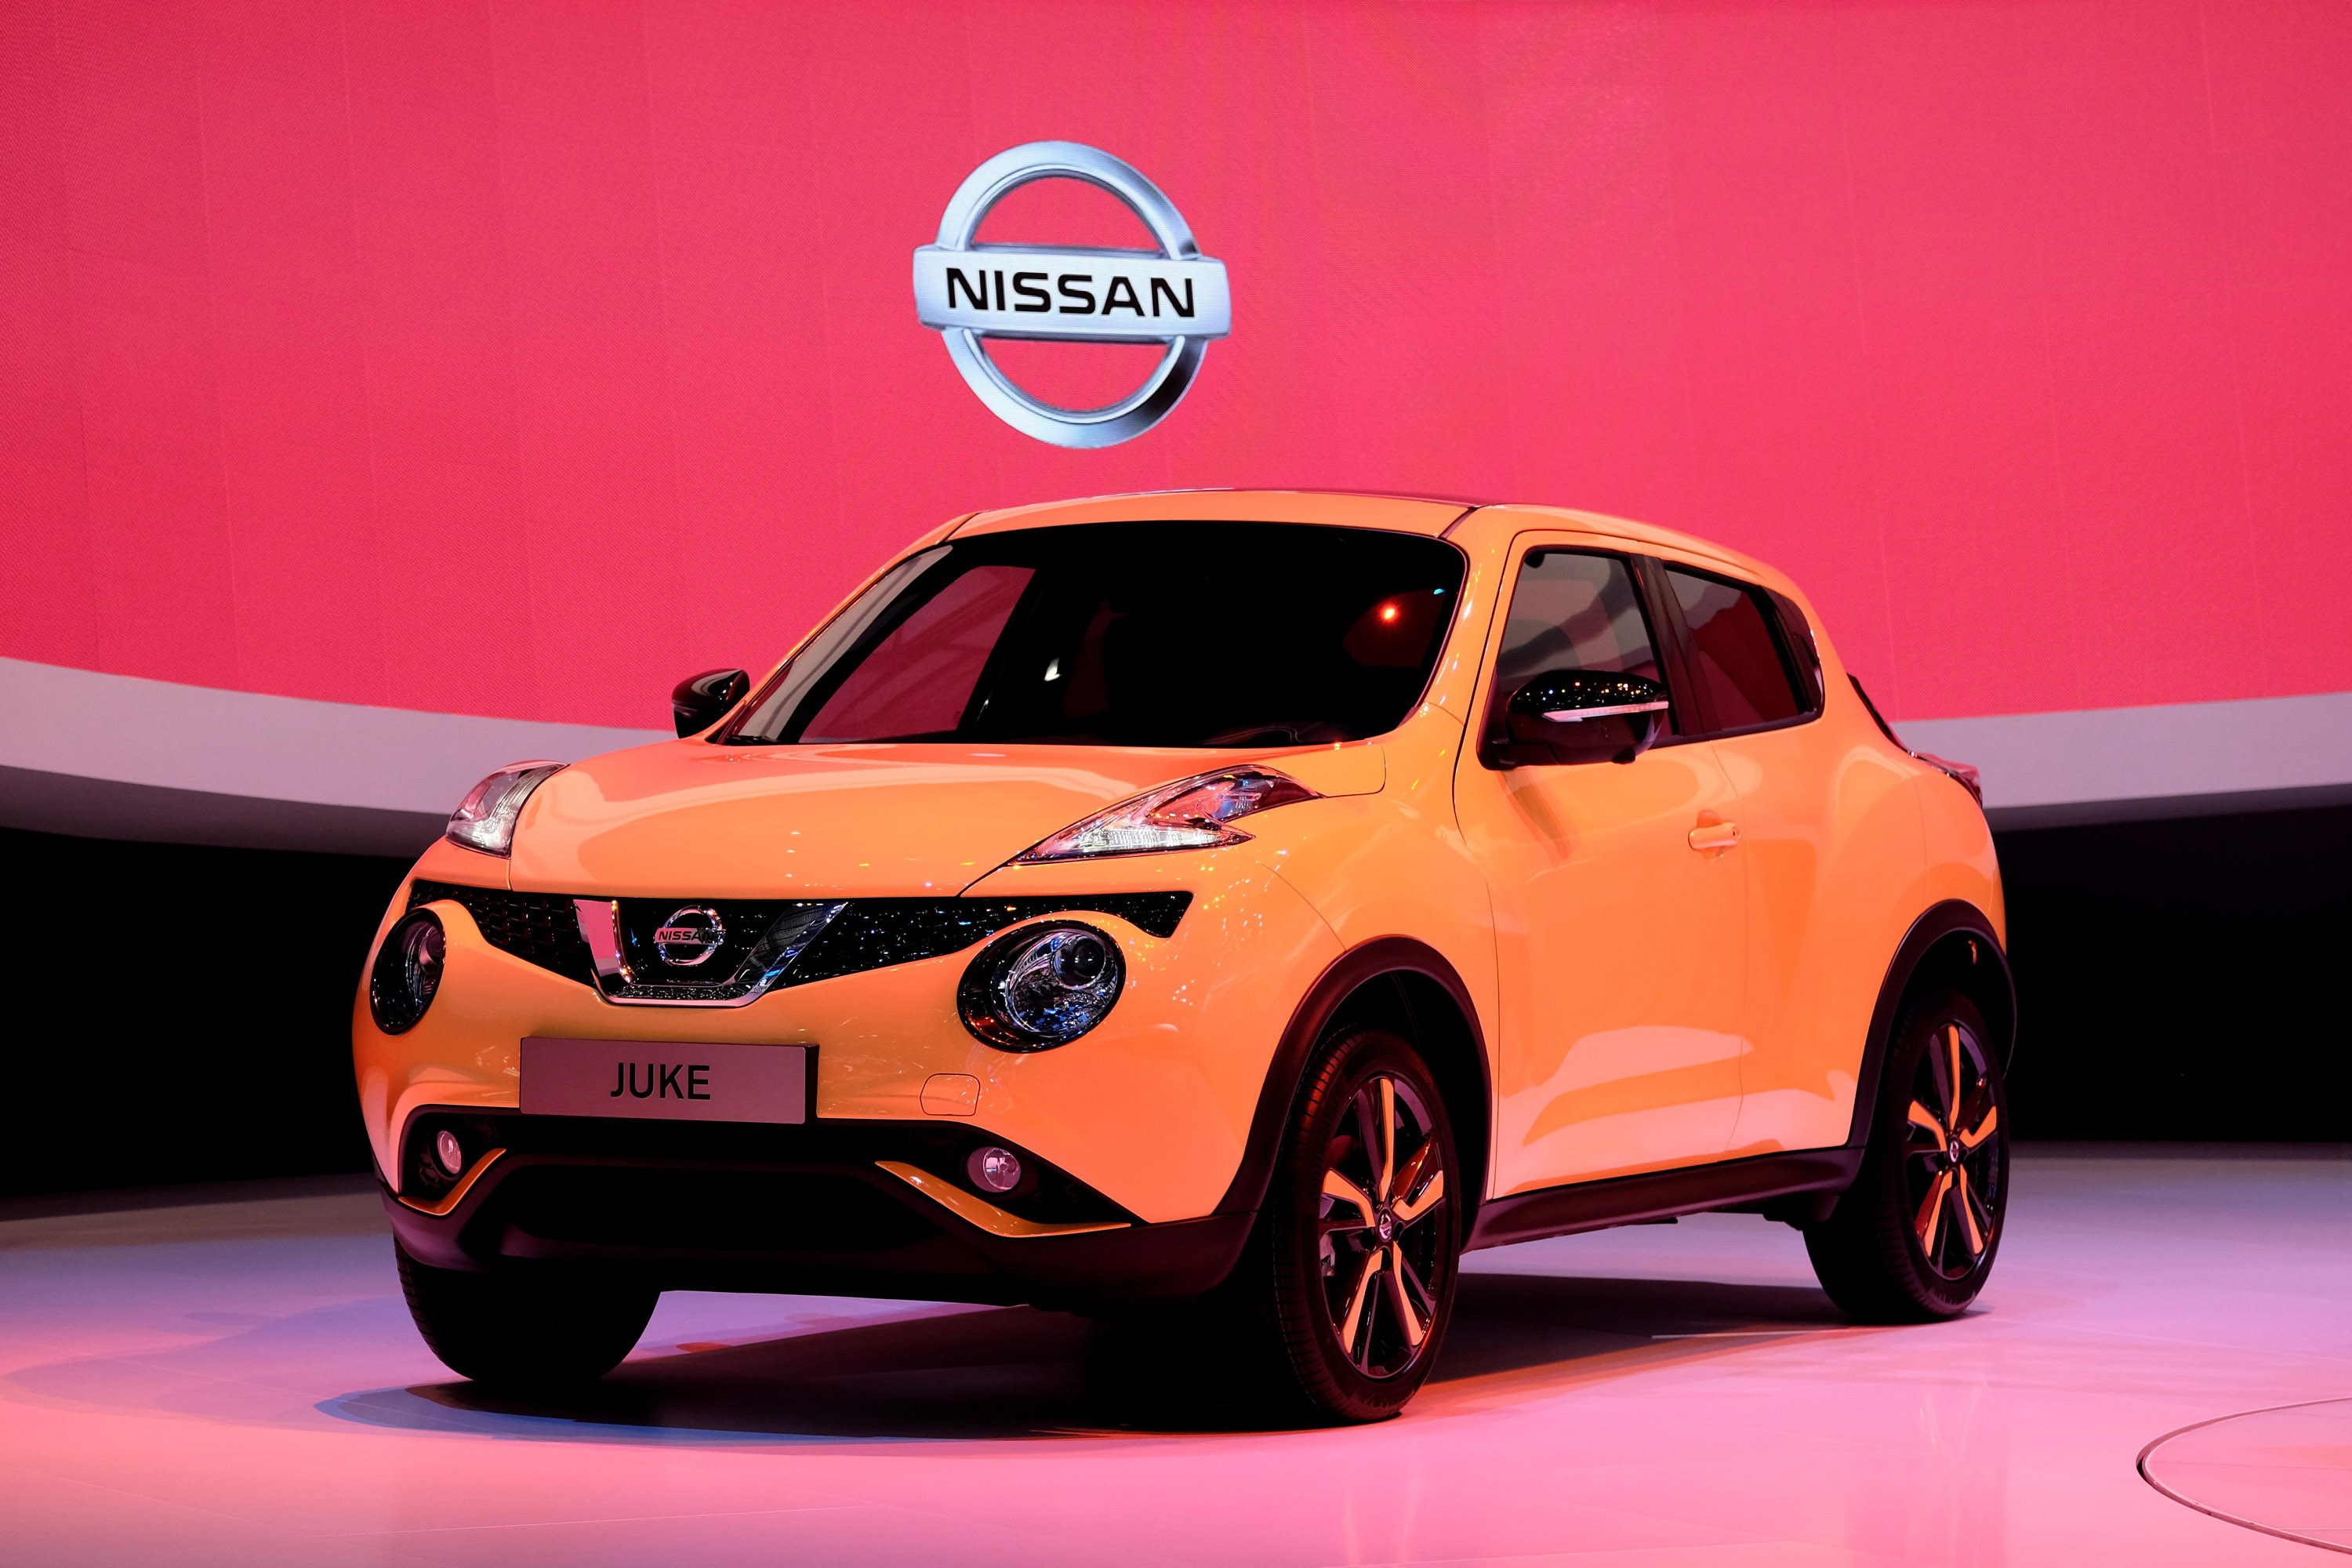 geneva motor show 2015 nissan juke video. Black Bedroom Furniture Sets. Home Design Ideas